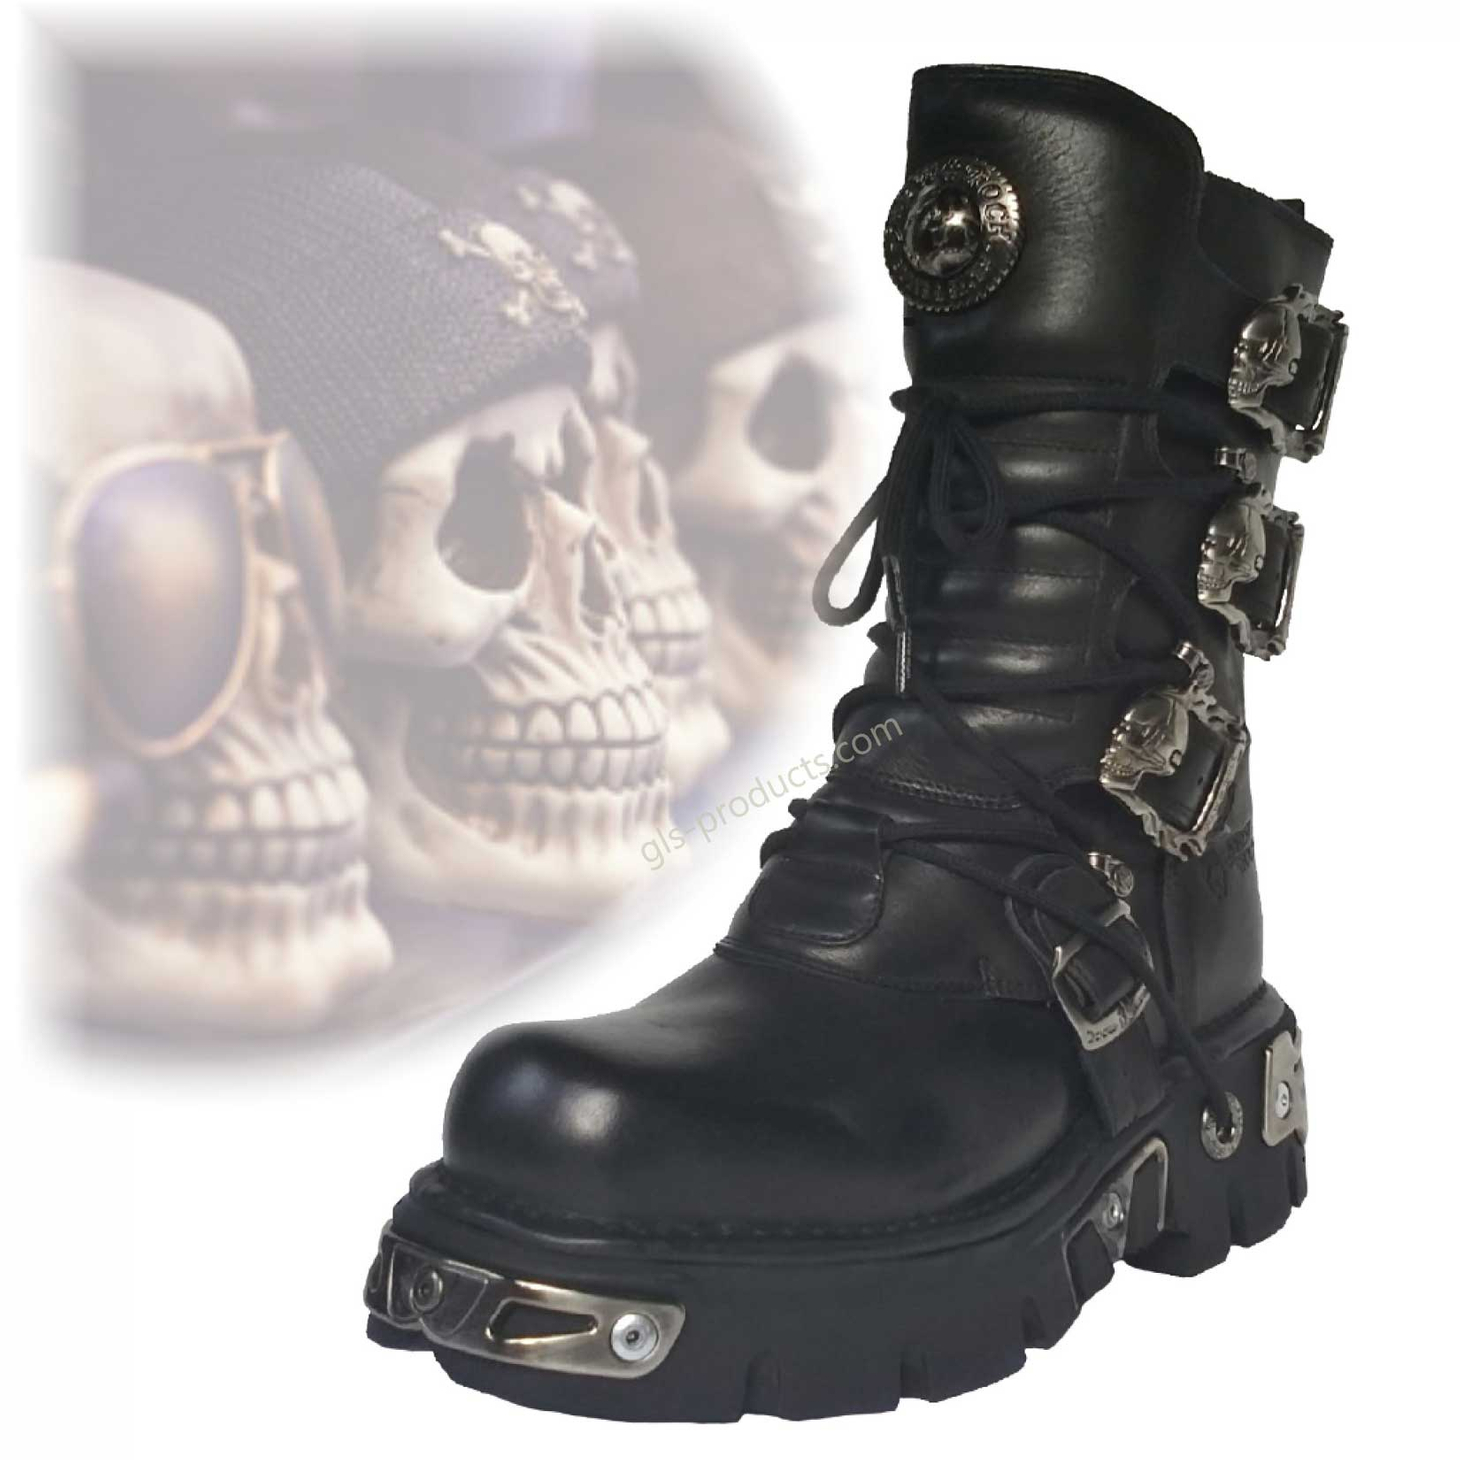 New Rock Boots 391, Skulls – Picture 1